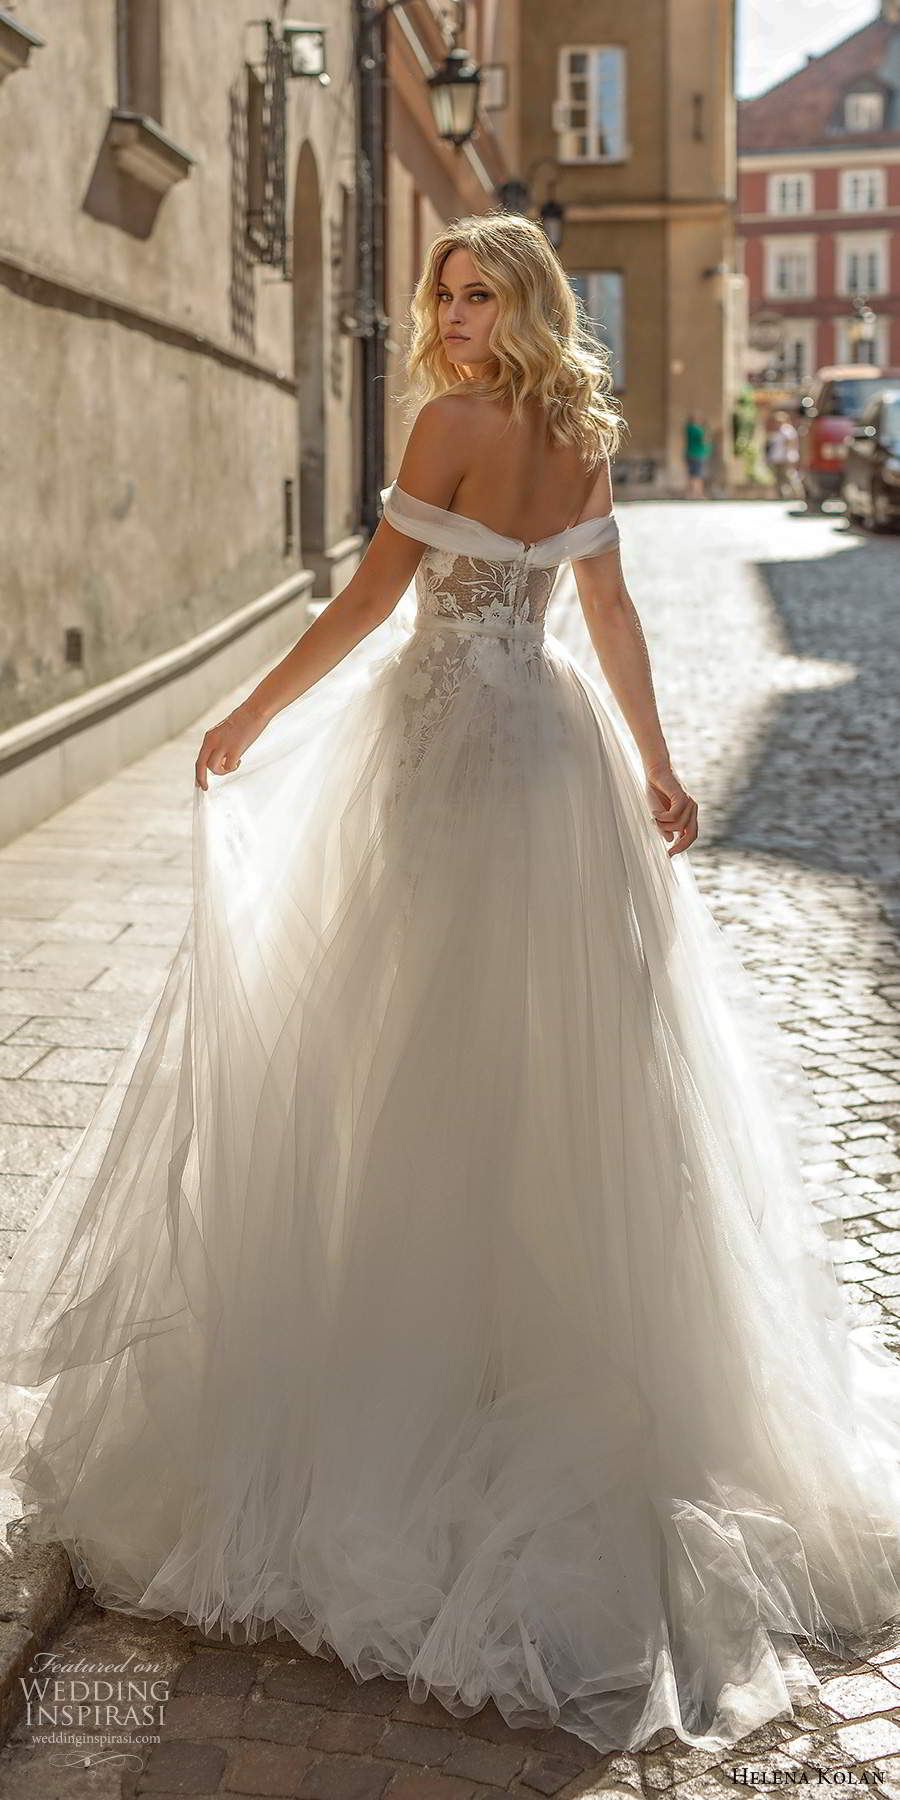 helena kolan 2020 bridal off shoulder straps sweetheart neckline fully embellished lace fit flare mermaid wedding dress ball gown overskirt sheer back chapel train (7) bv